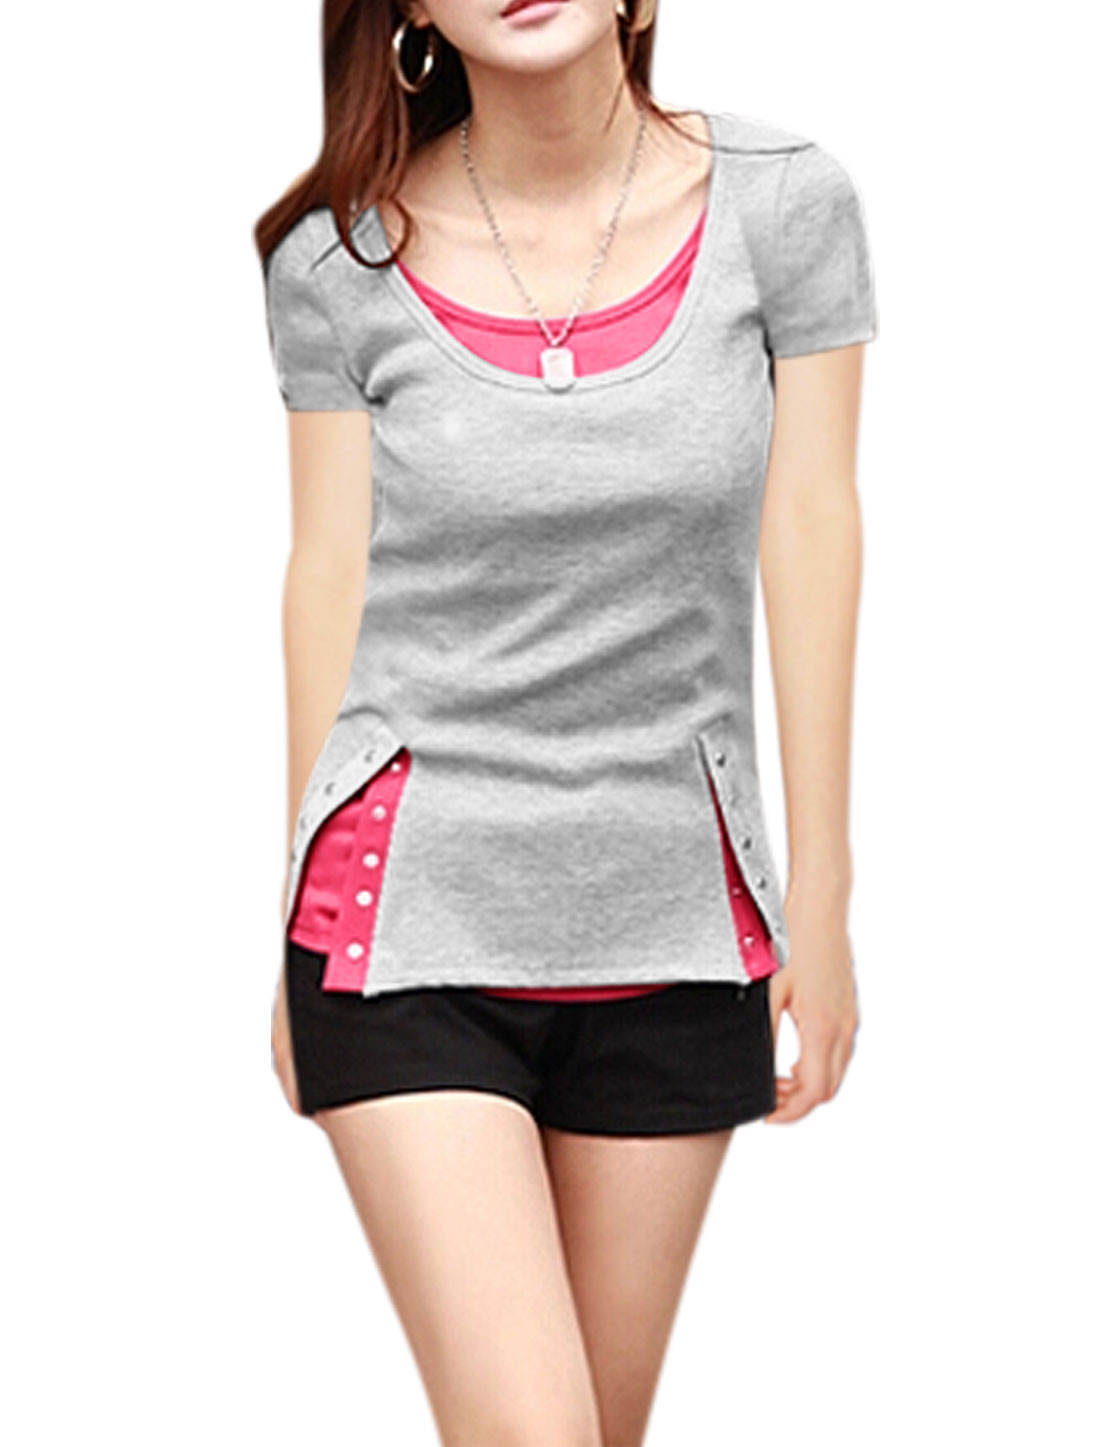 Women Short Sleeves Layered Round Neckline Tee Shirts Gray M